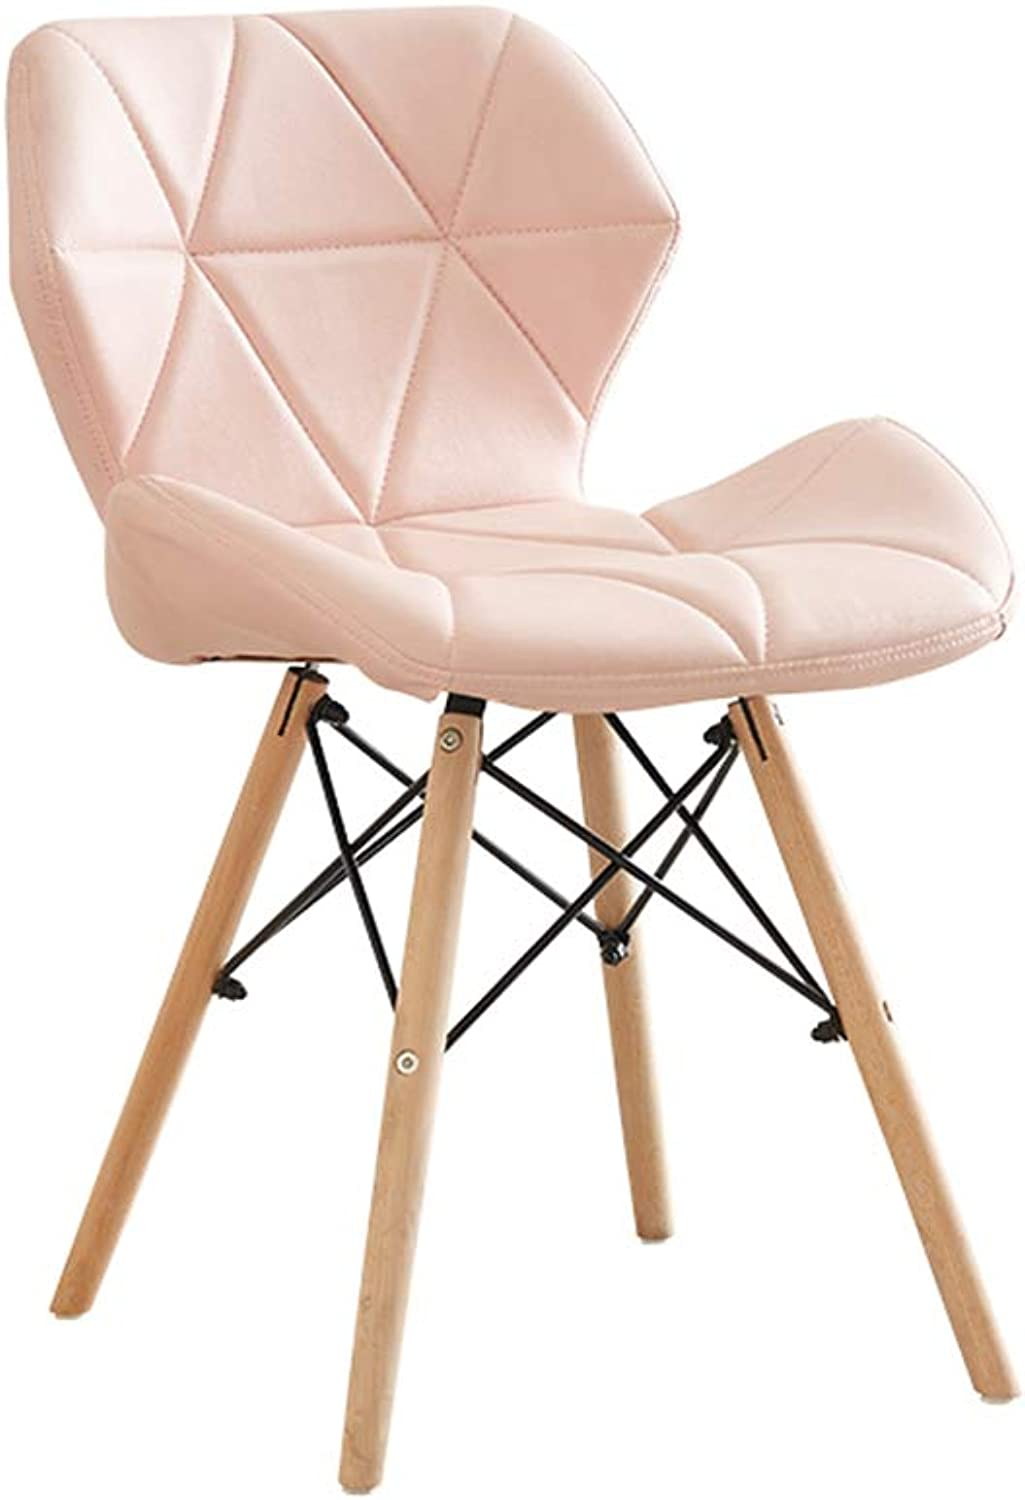 Chair - Restaurant Stool Computer Chair Modern Home Makeup Stool Chair Multi-color Optional Comfortable and Durable (color   G)